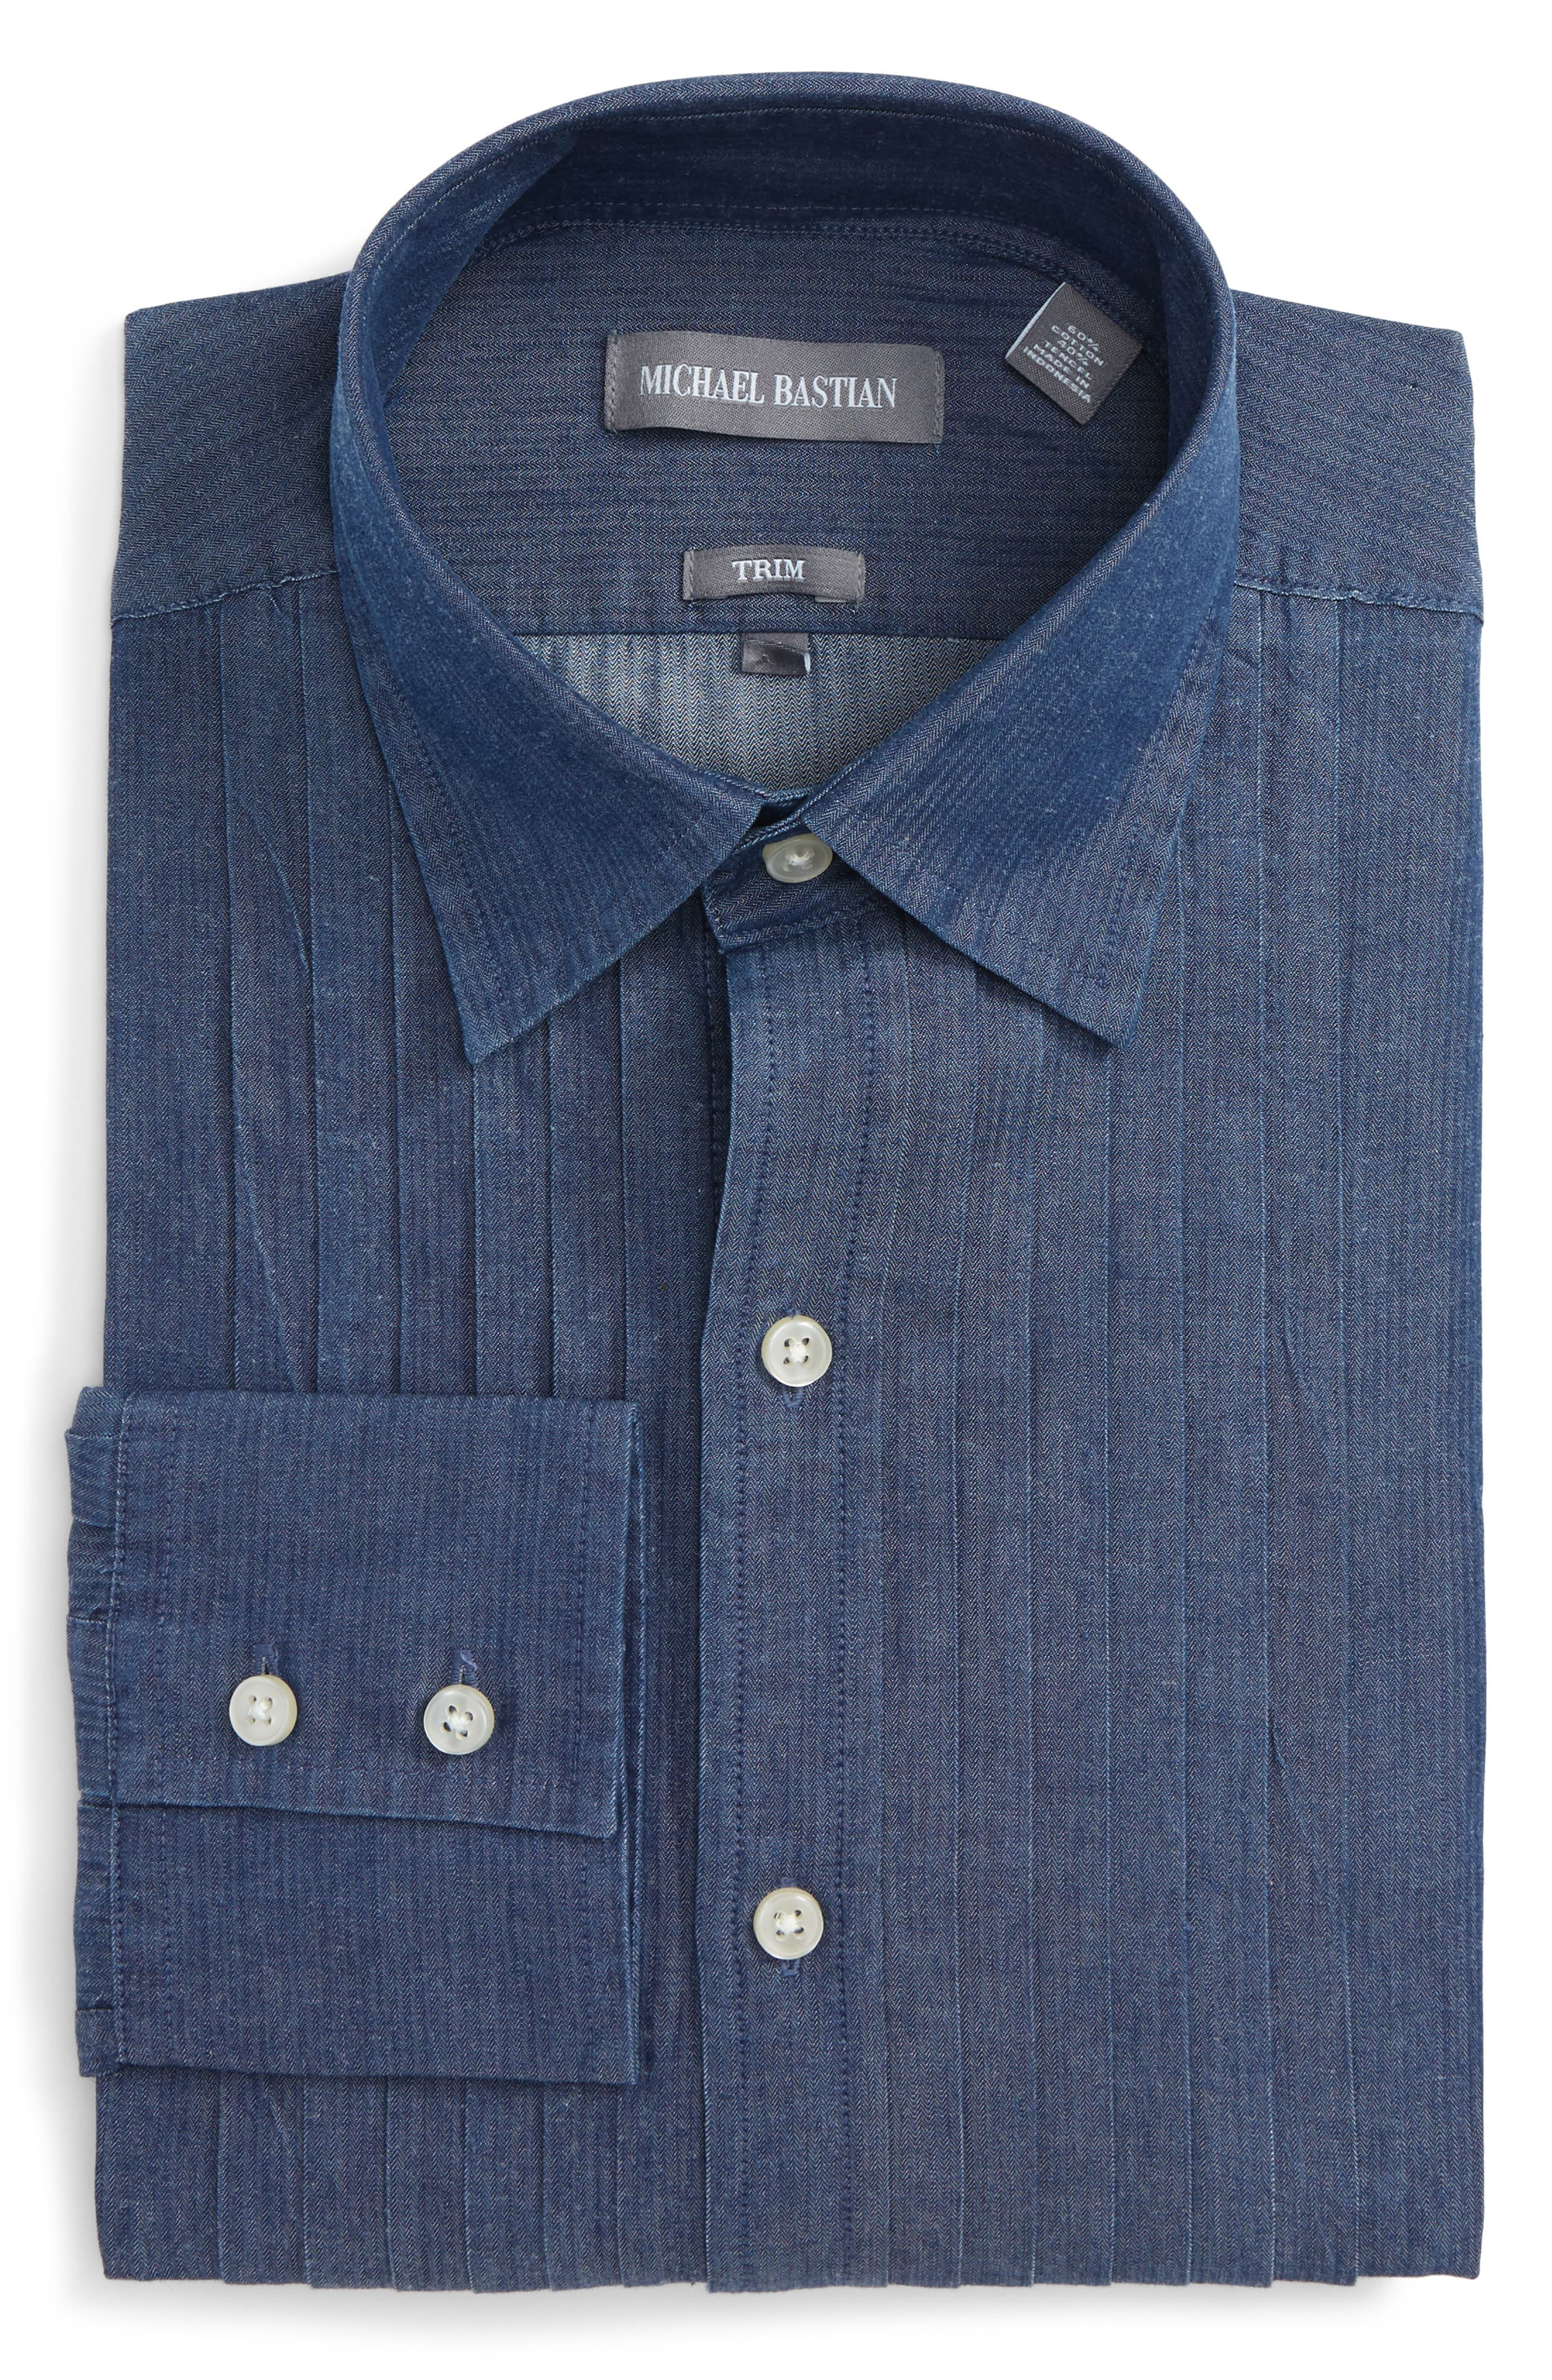 Trim Fit Denim Dress Shirt,                             Main thumbnail 1, color,                             Denim